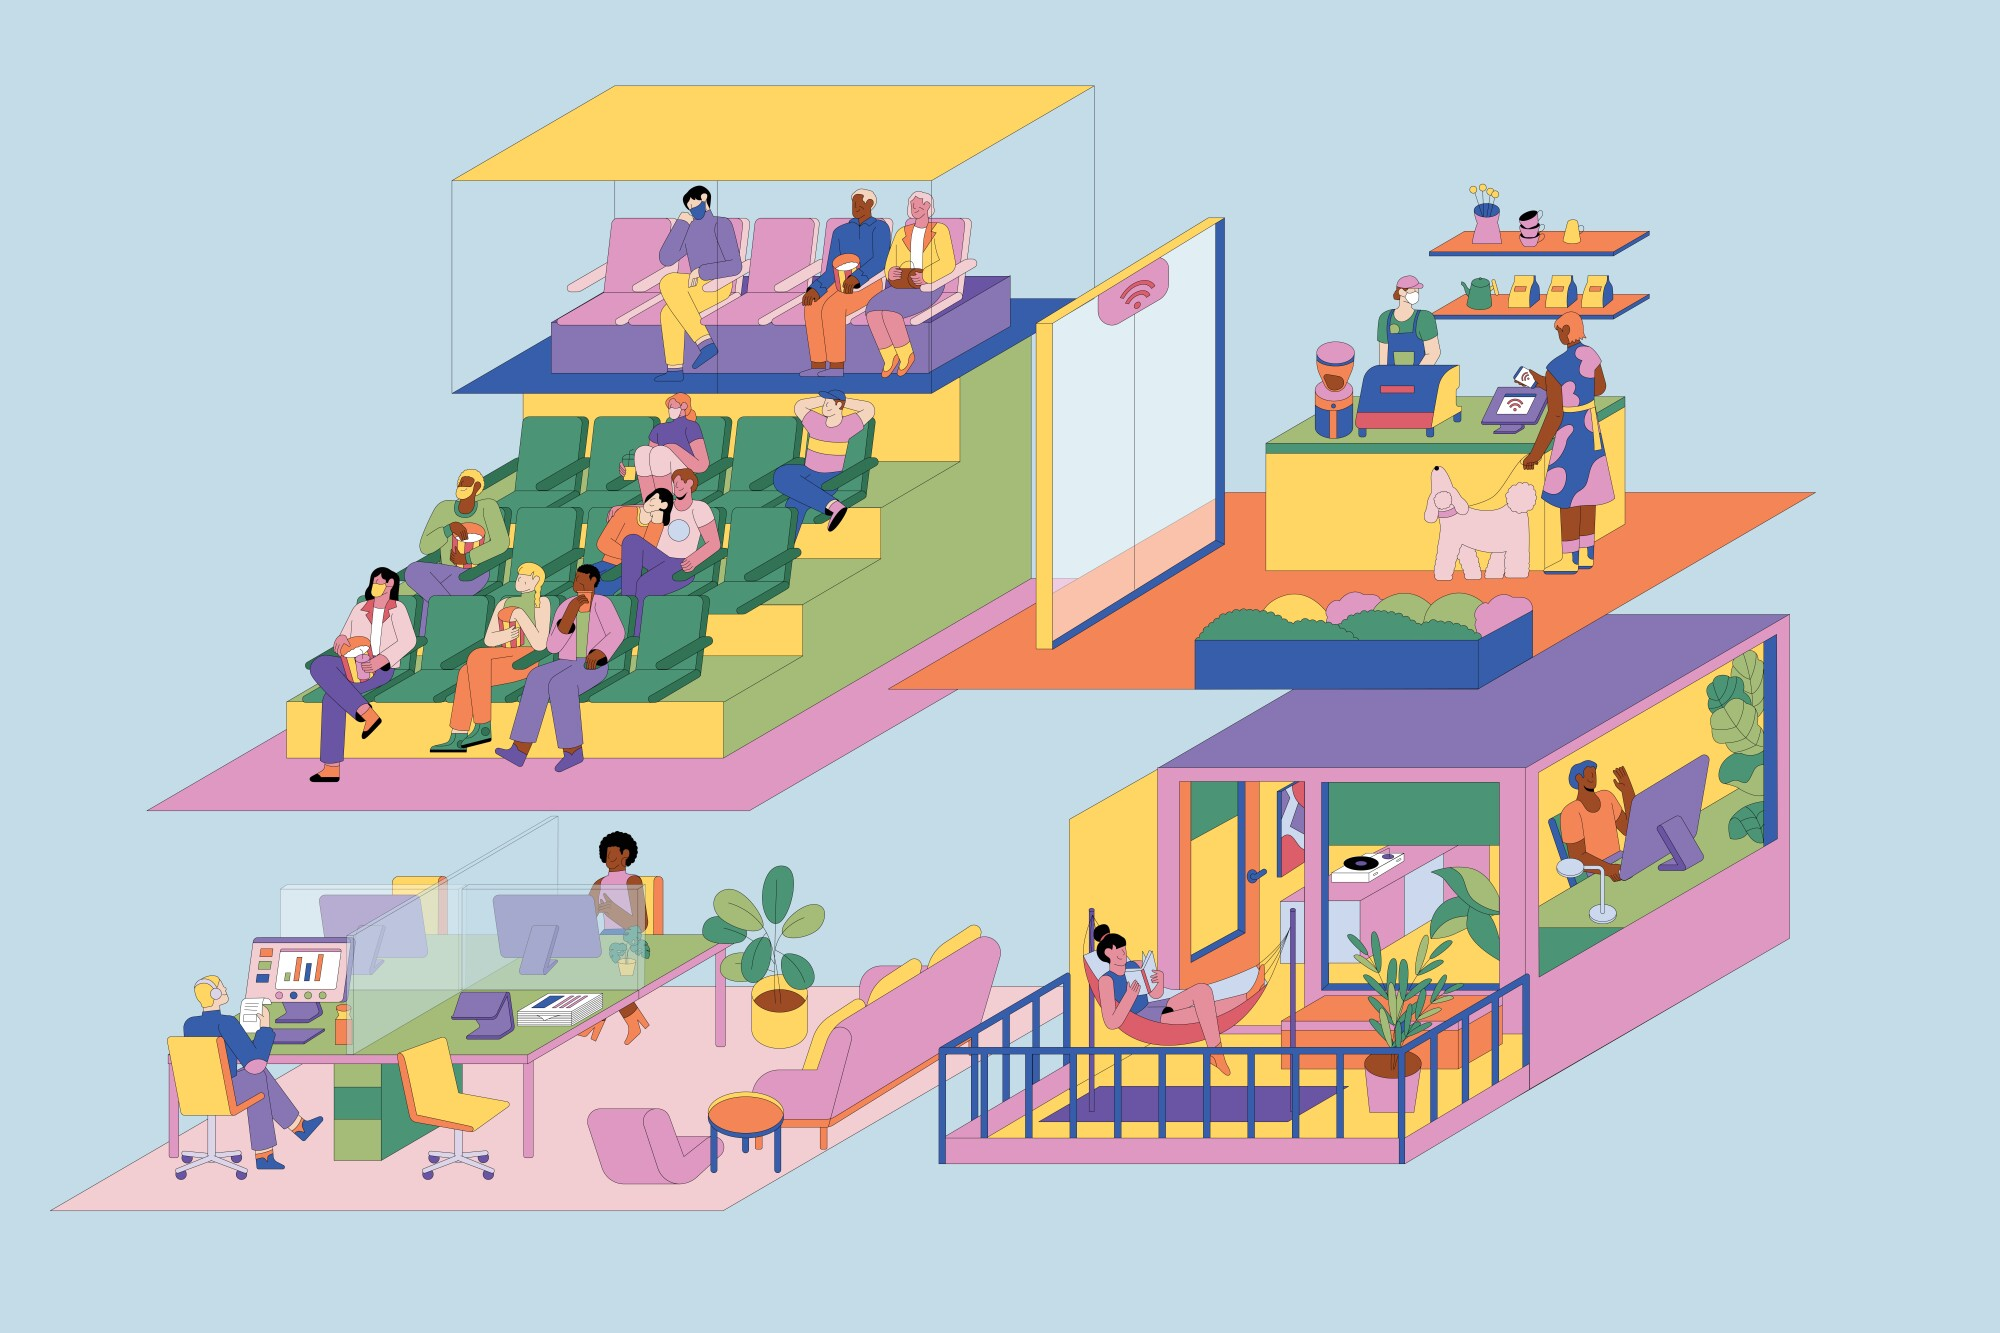 An illustration shows the ways in which homes, offices and businesses may be redesigned after the COVID-19 pandemic.